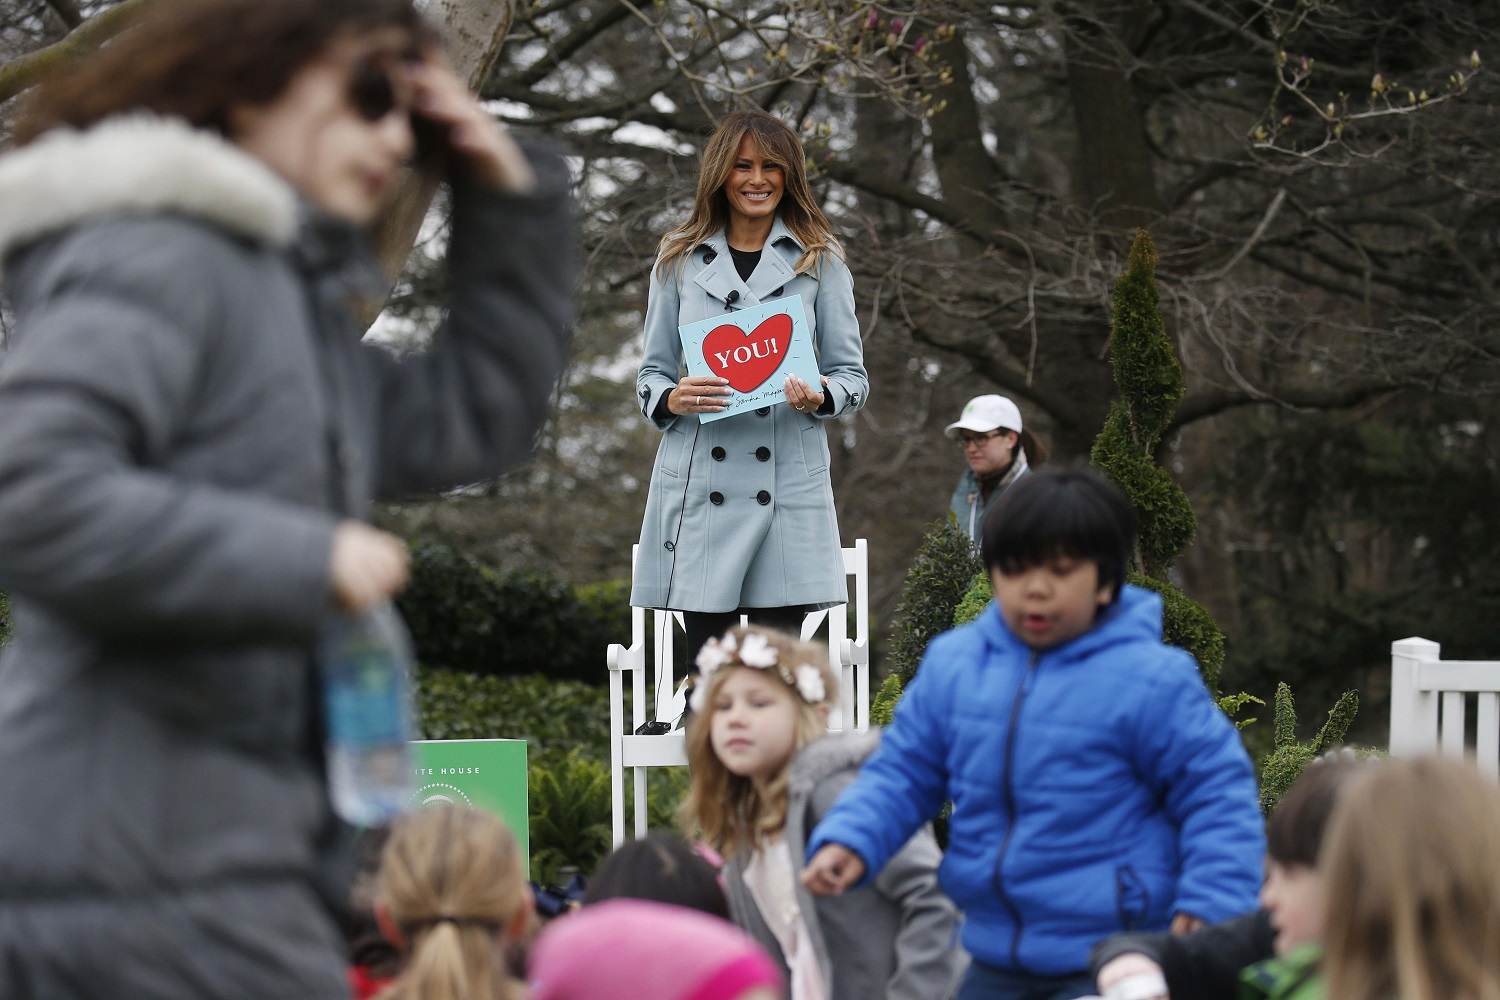 """Children and U.S. first lady Melania Trump stand up after she read Sandra Boynton's book """"You!"""" to children gathered for the annual White House Easter Egg Roll on the South Lawn of the White House in Washington, U.S., April 2, 2018. REUTERS/Leah Millis"""